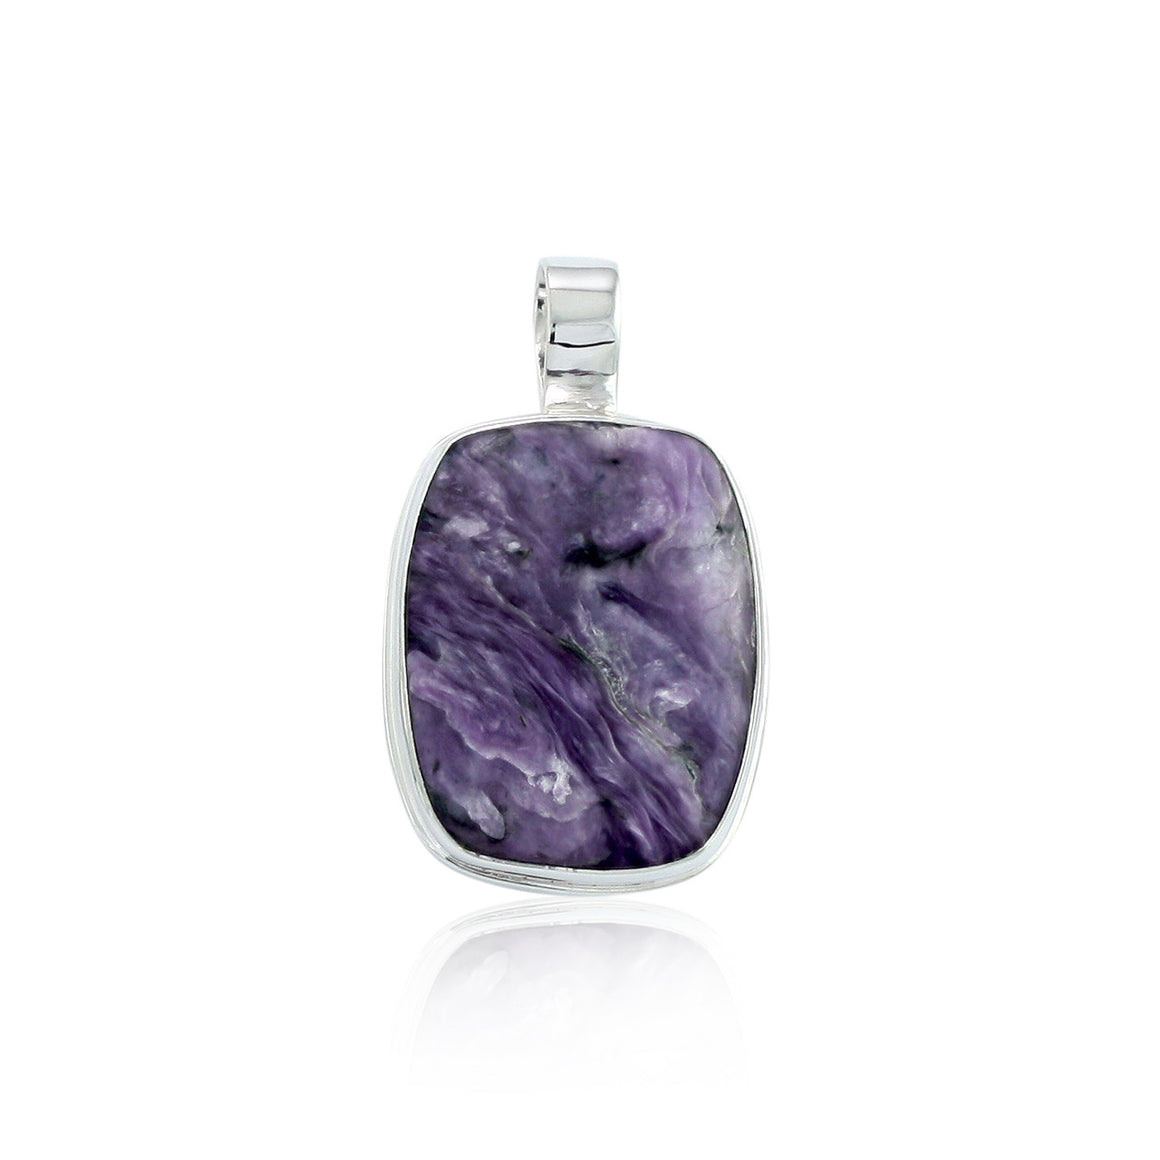 Charoite Pendant - One of a Kind